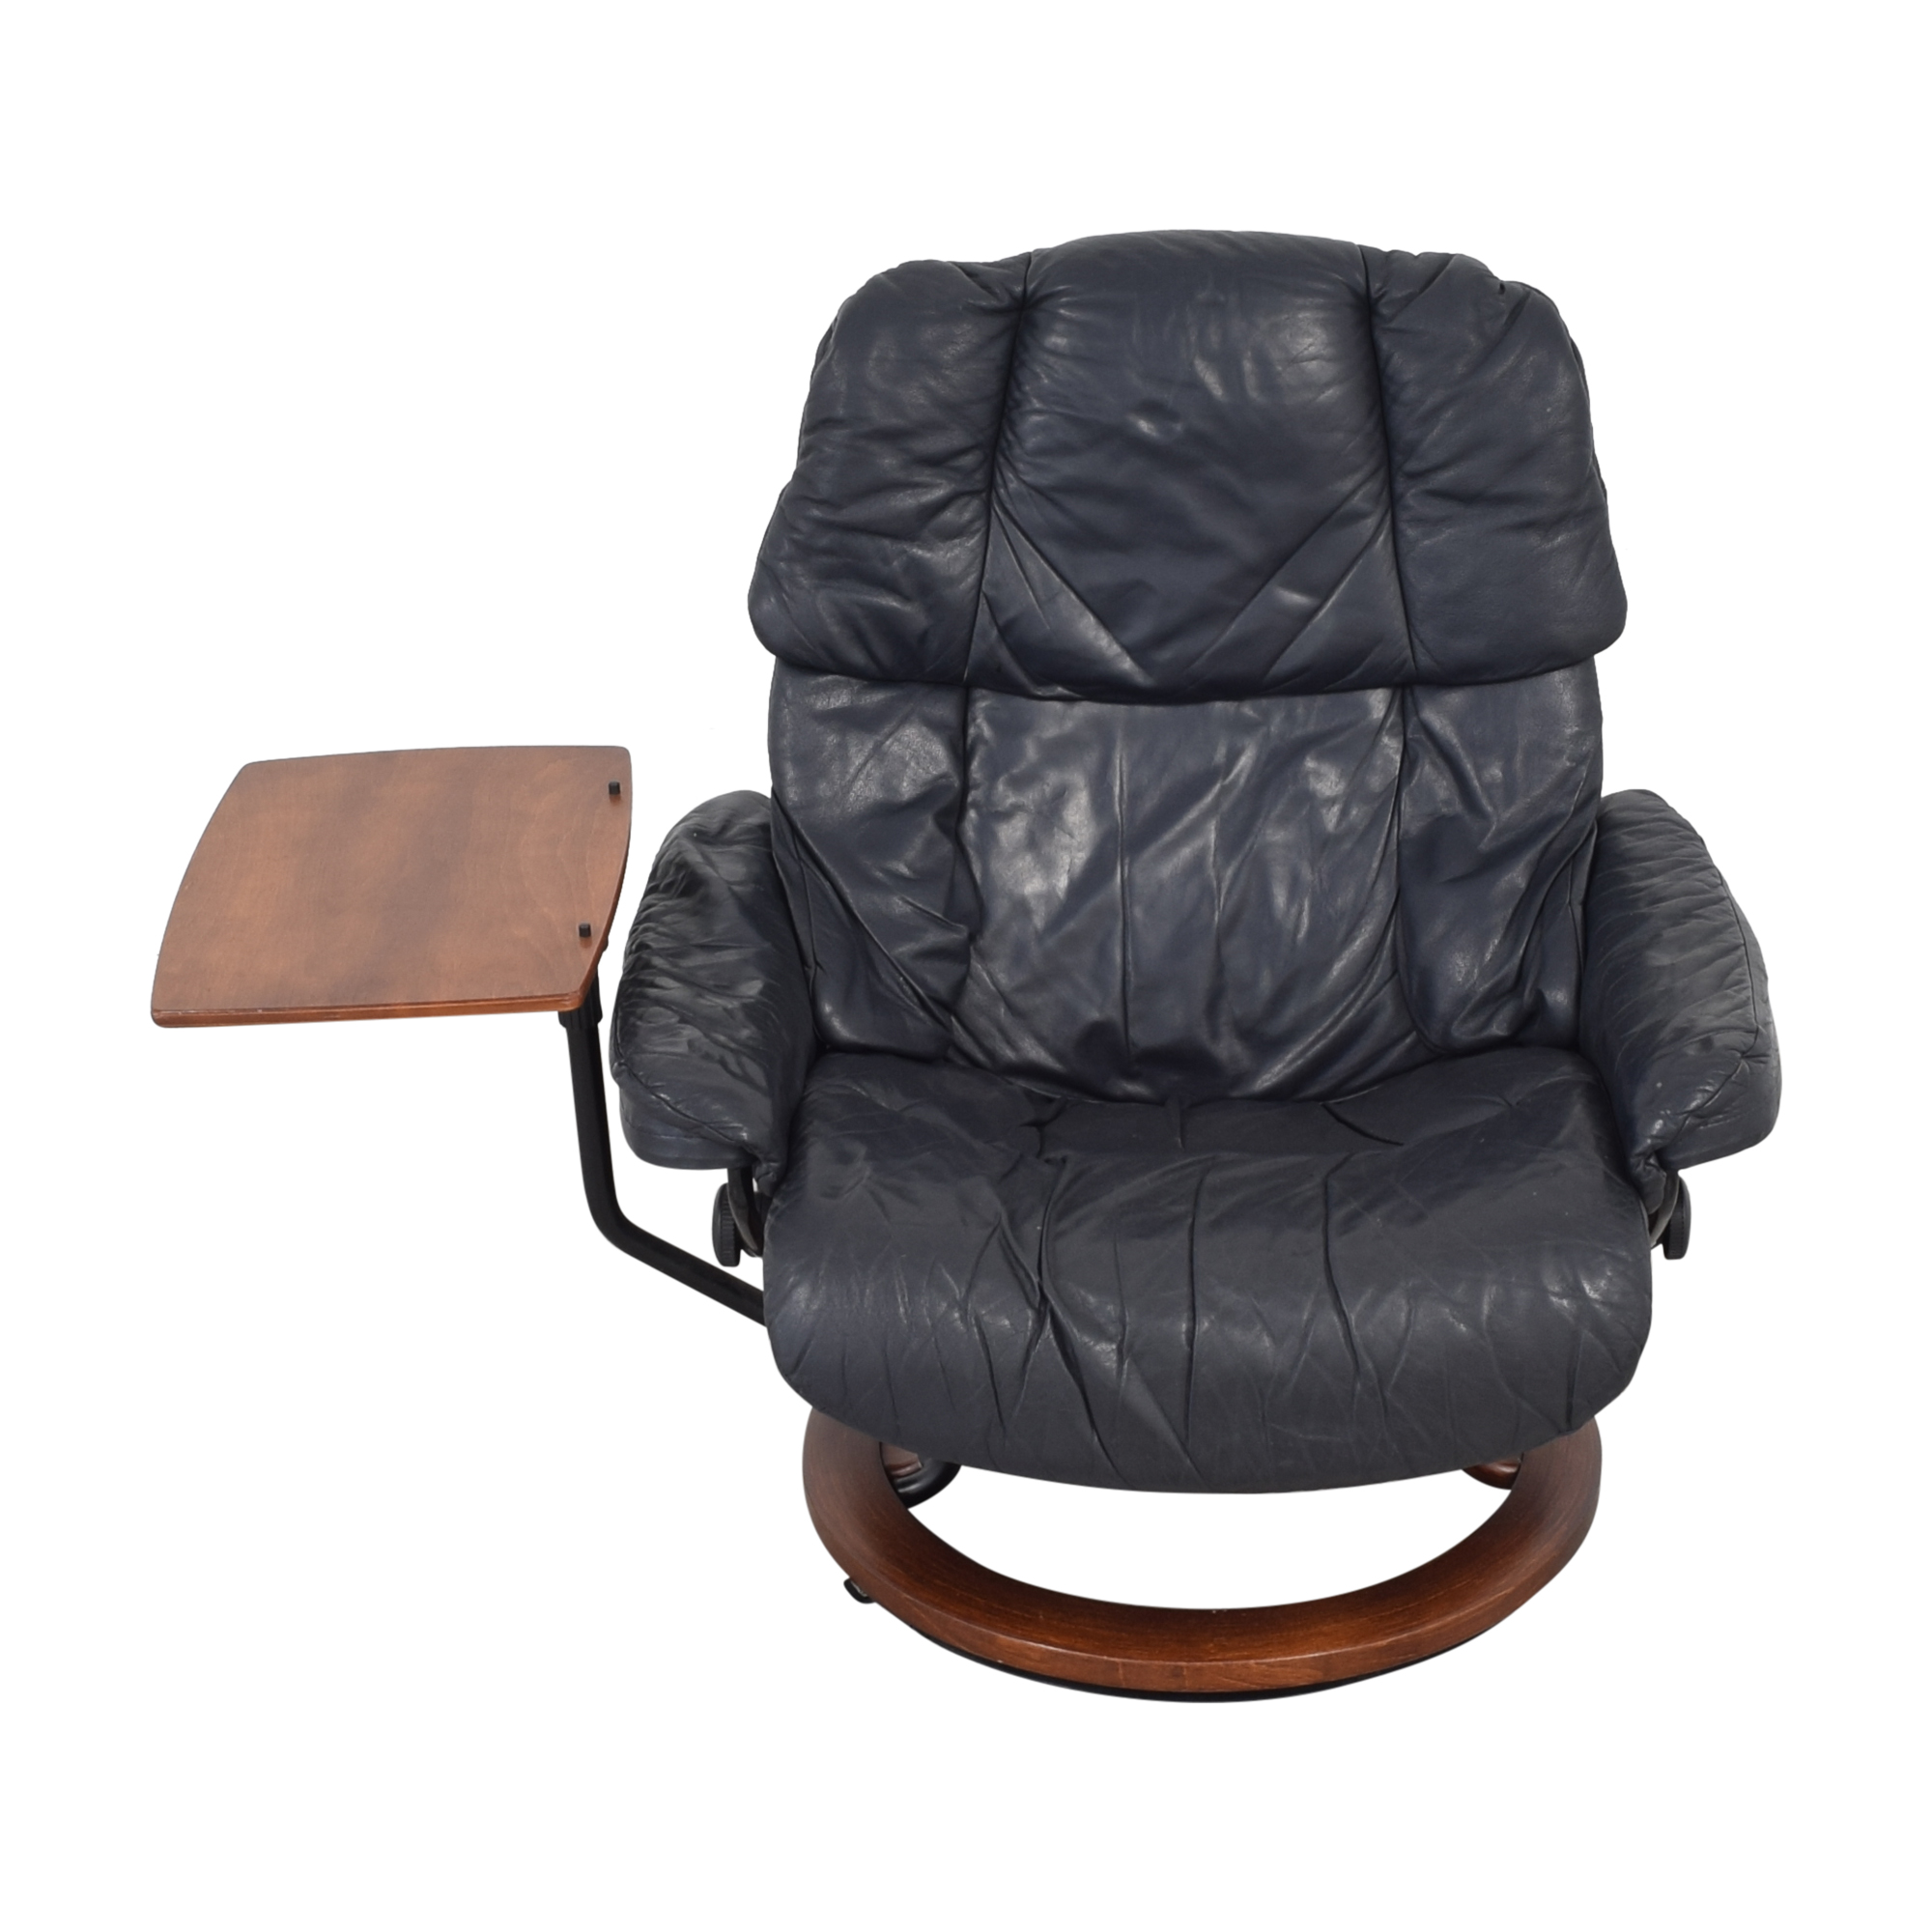 Ekornes Ekornes Stressless Reno with Footstool and Personal Table on sale